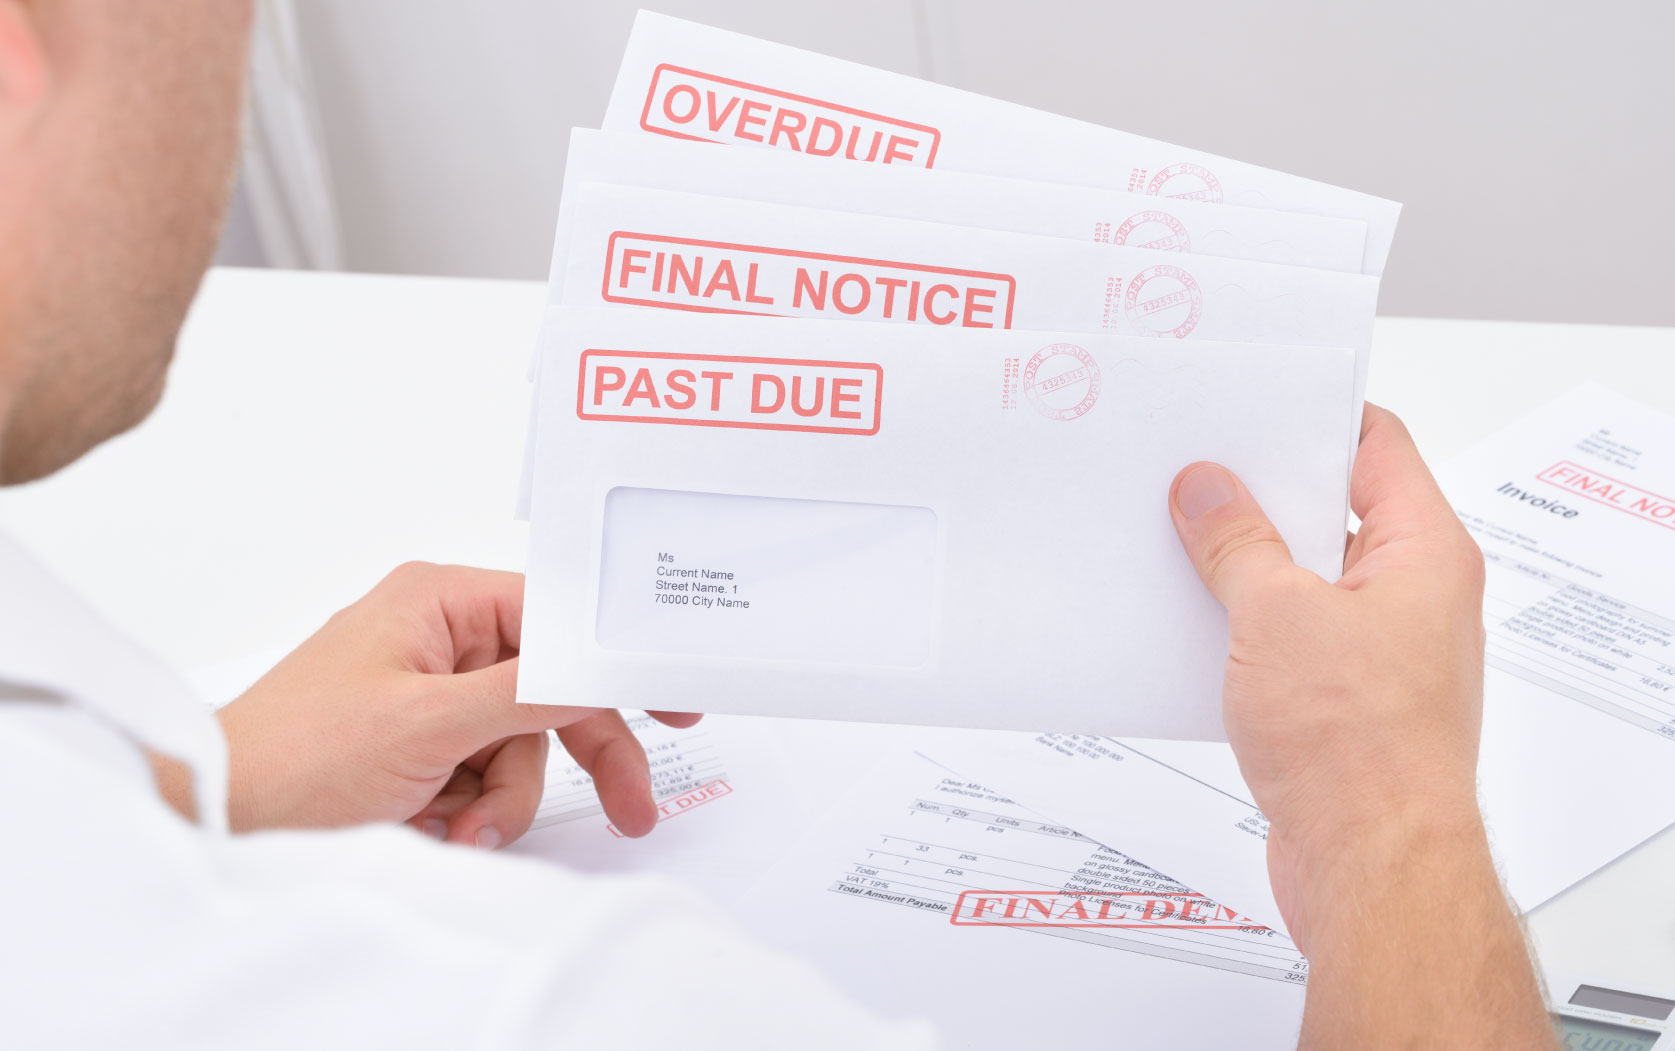 How Can I Legally Exit Debt Review In South Africa